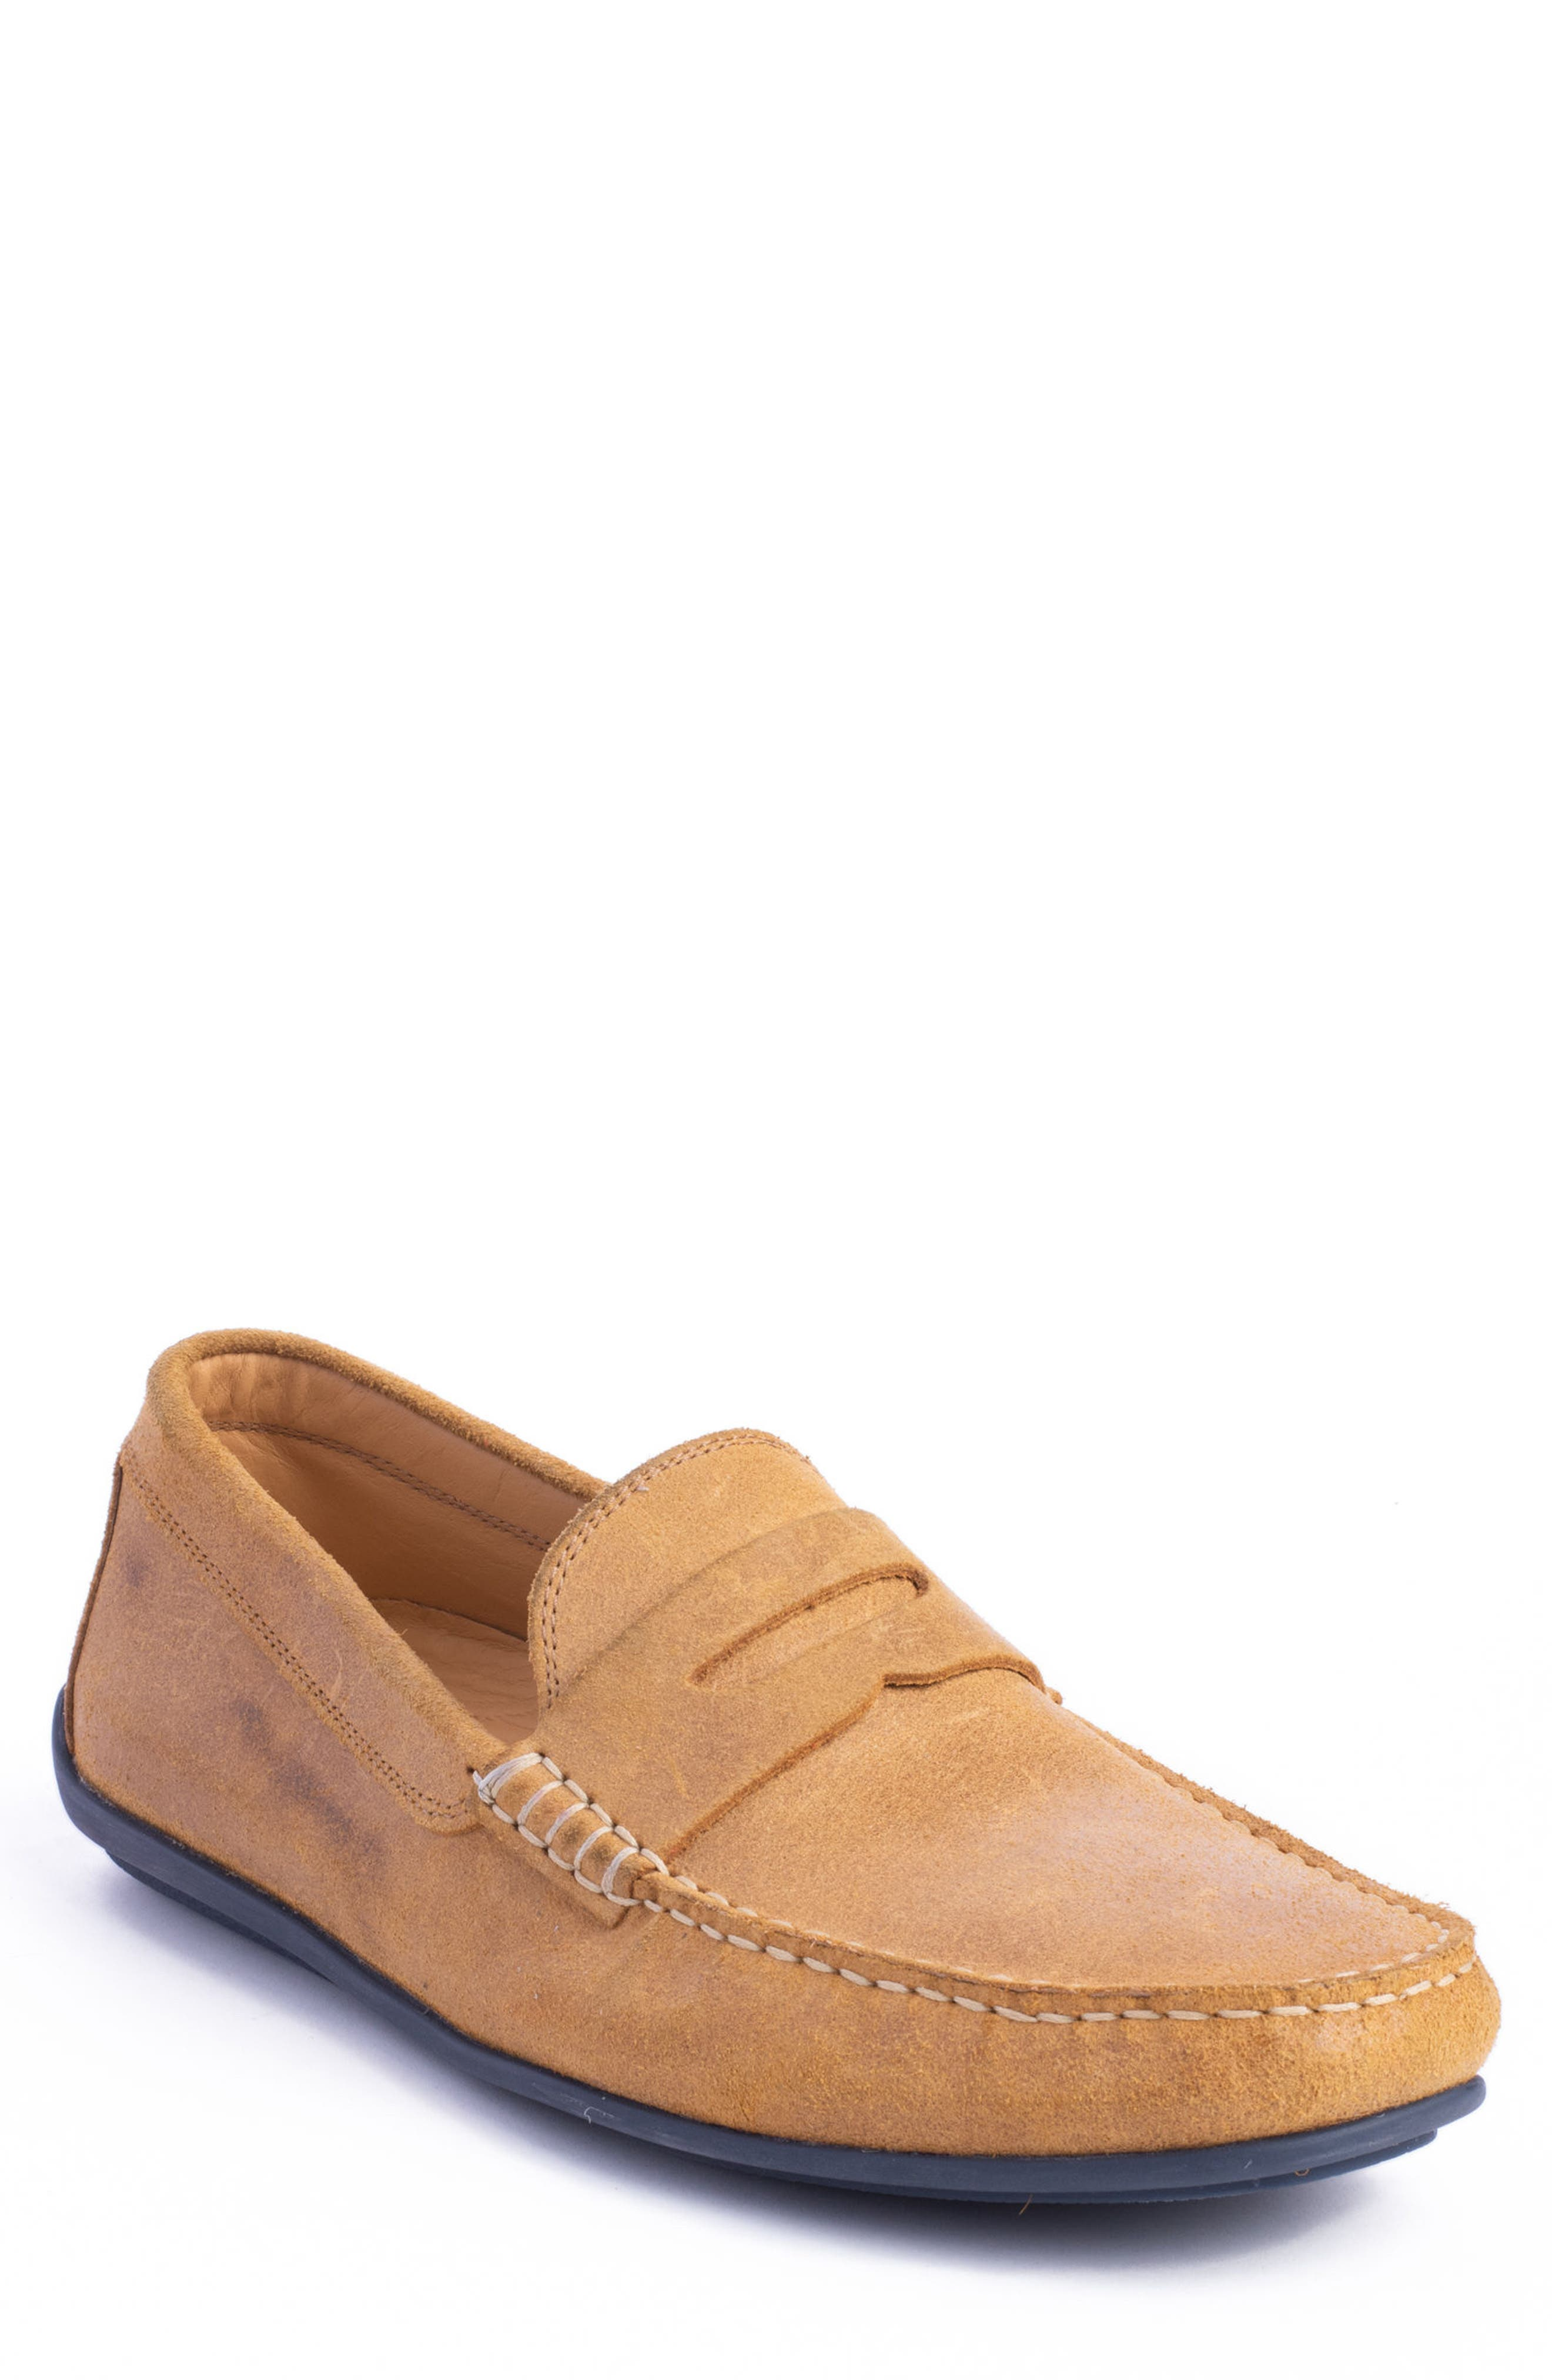 Barretts Penny Loafer,                         Main,                         color, Tan